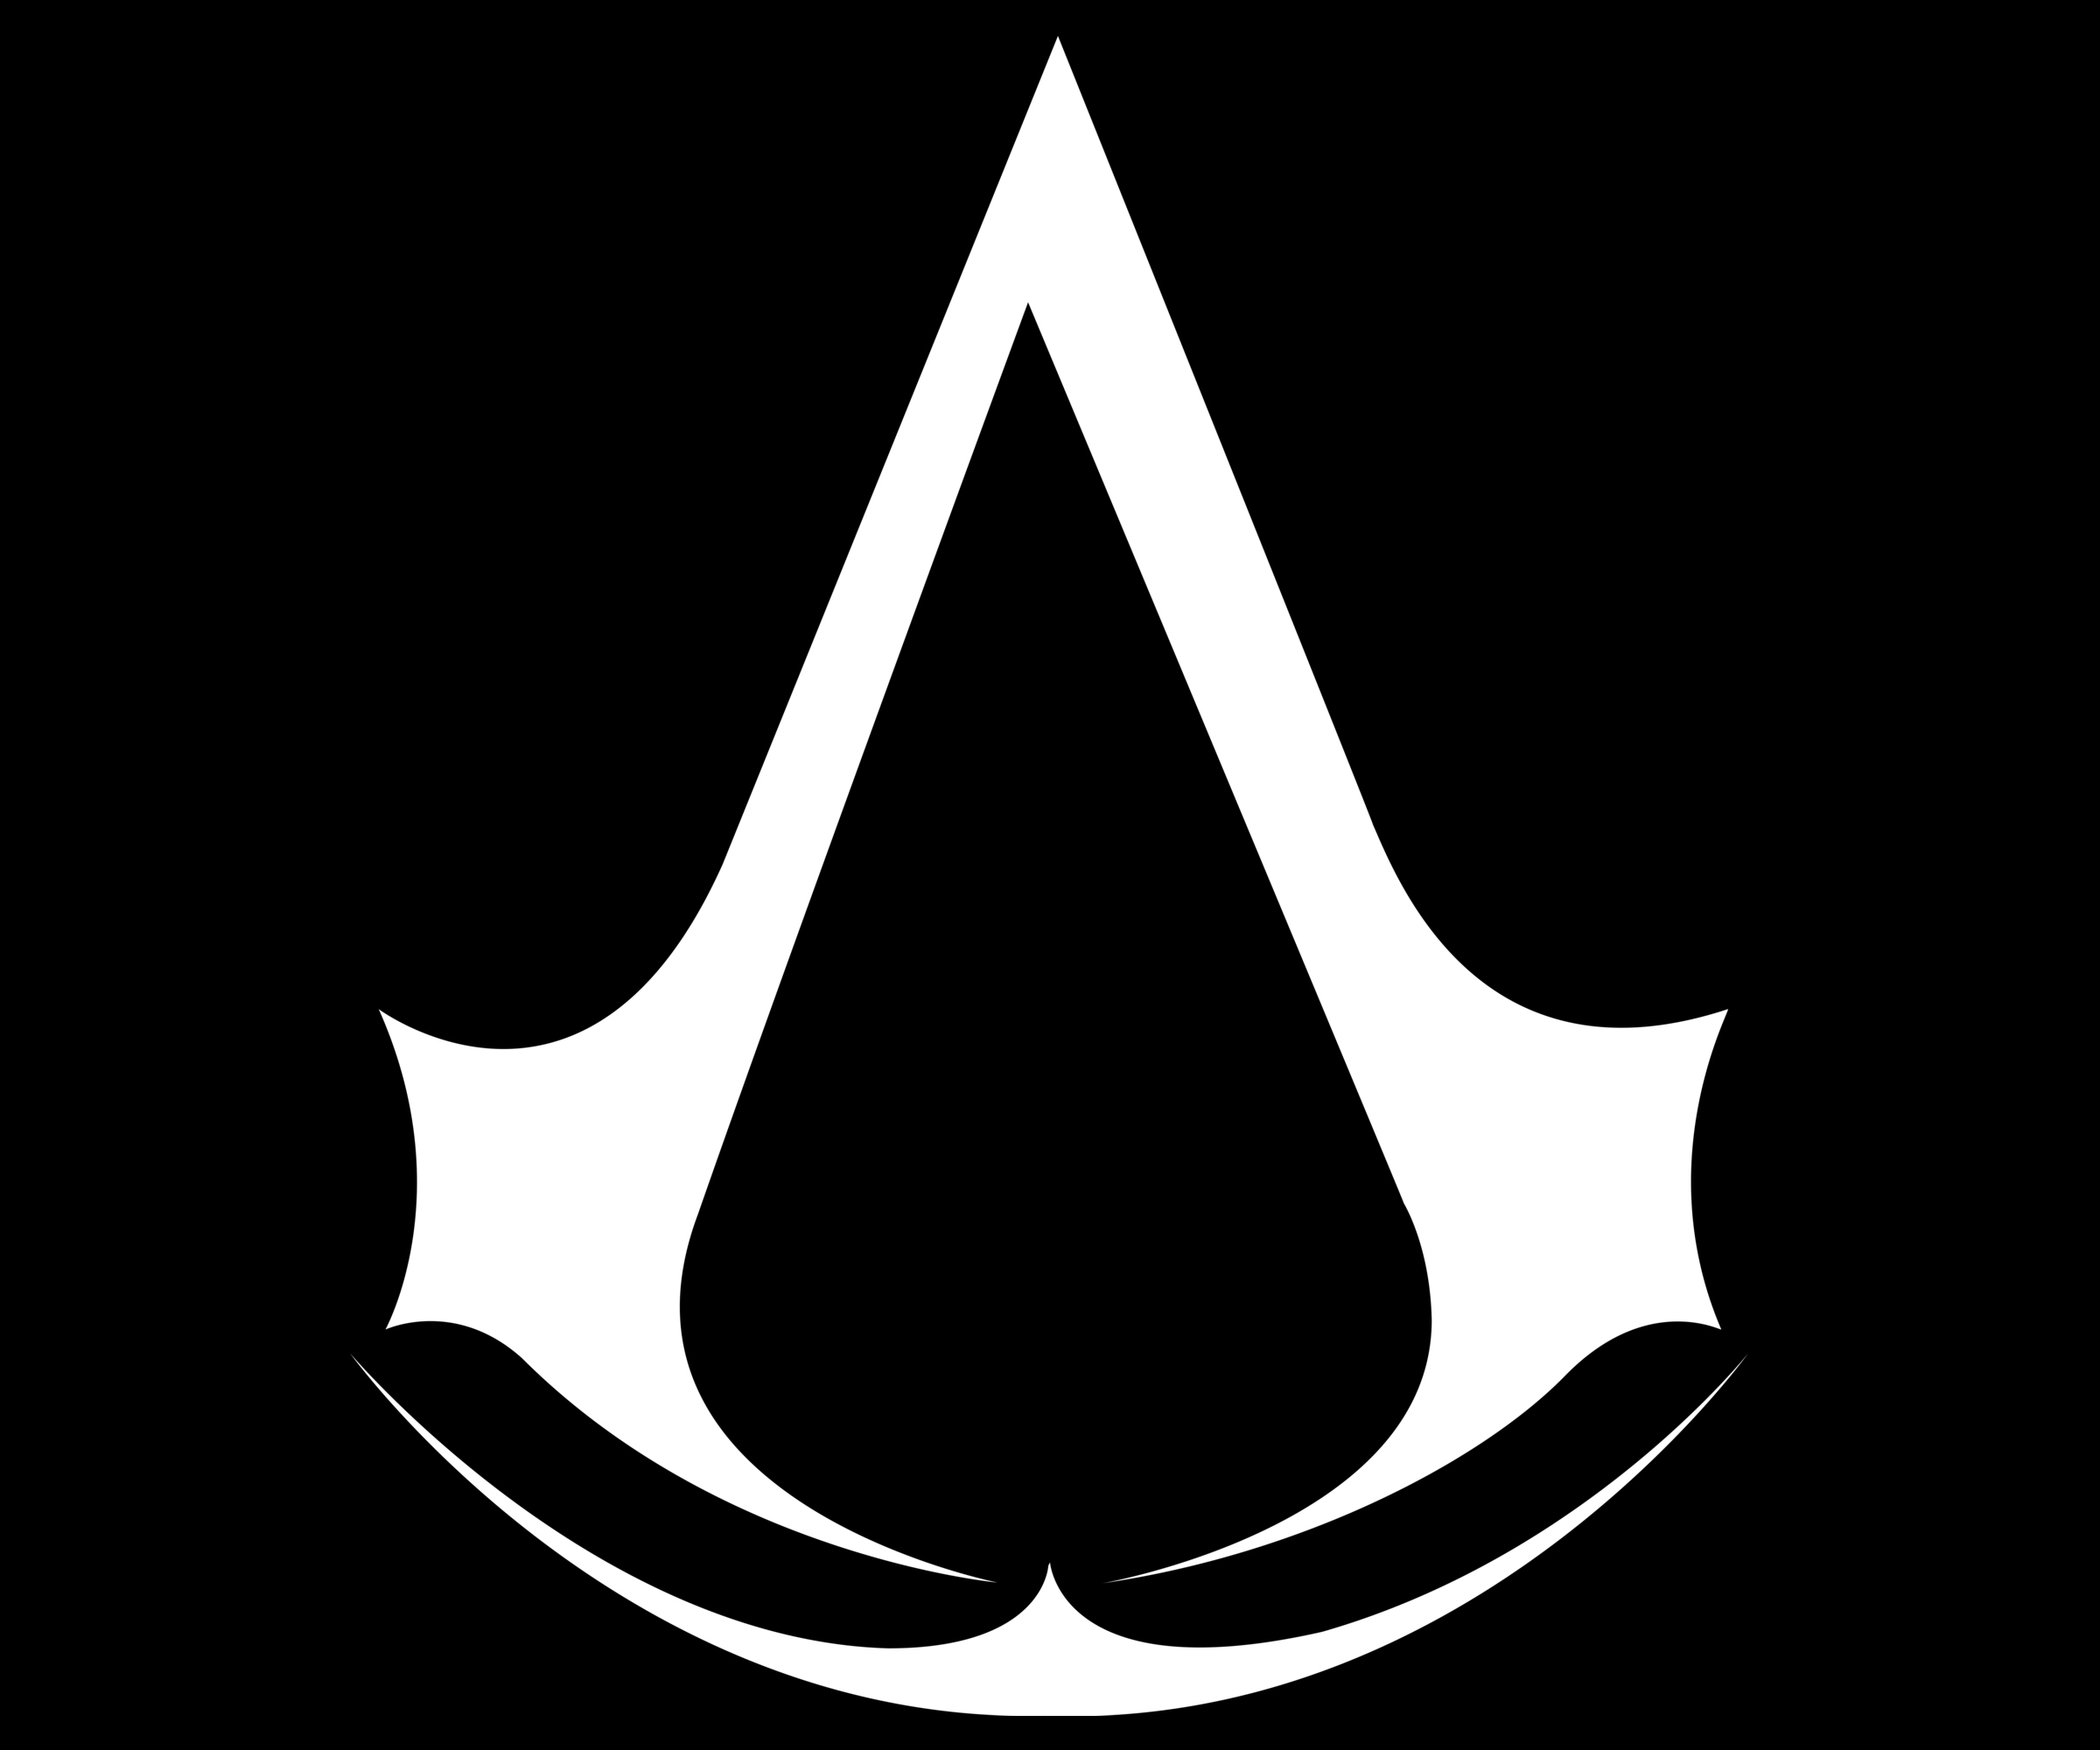 Assassins Creed Logo, Assassins Creed Symbol, Meaning ...